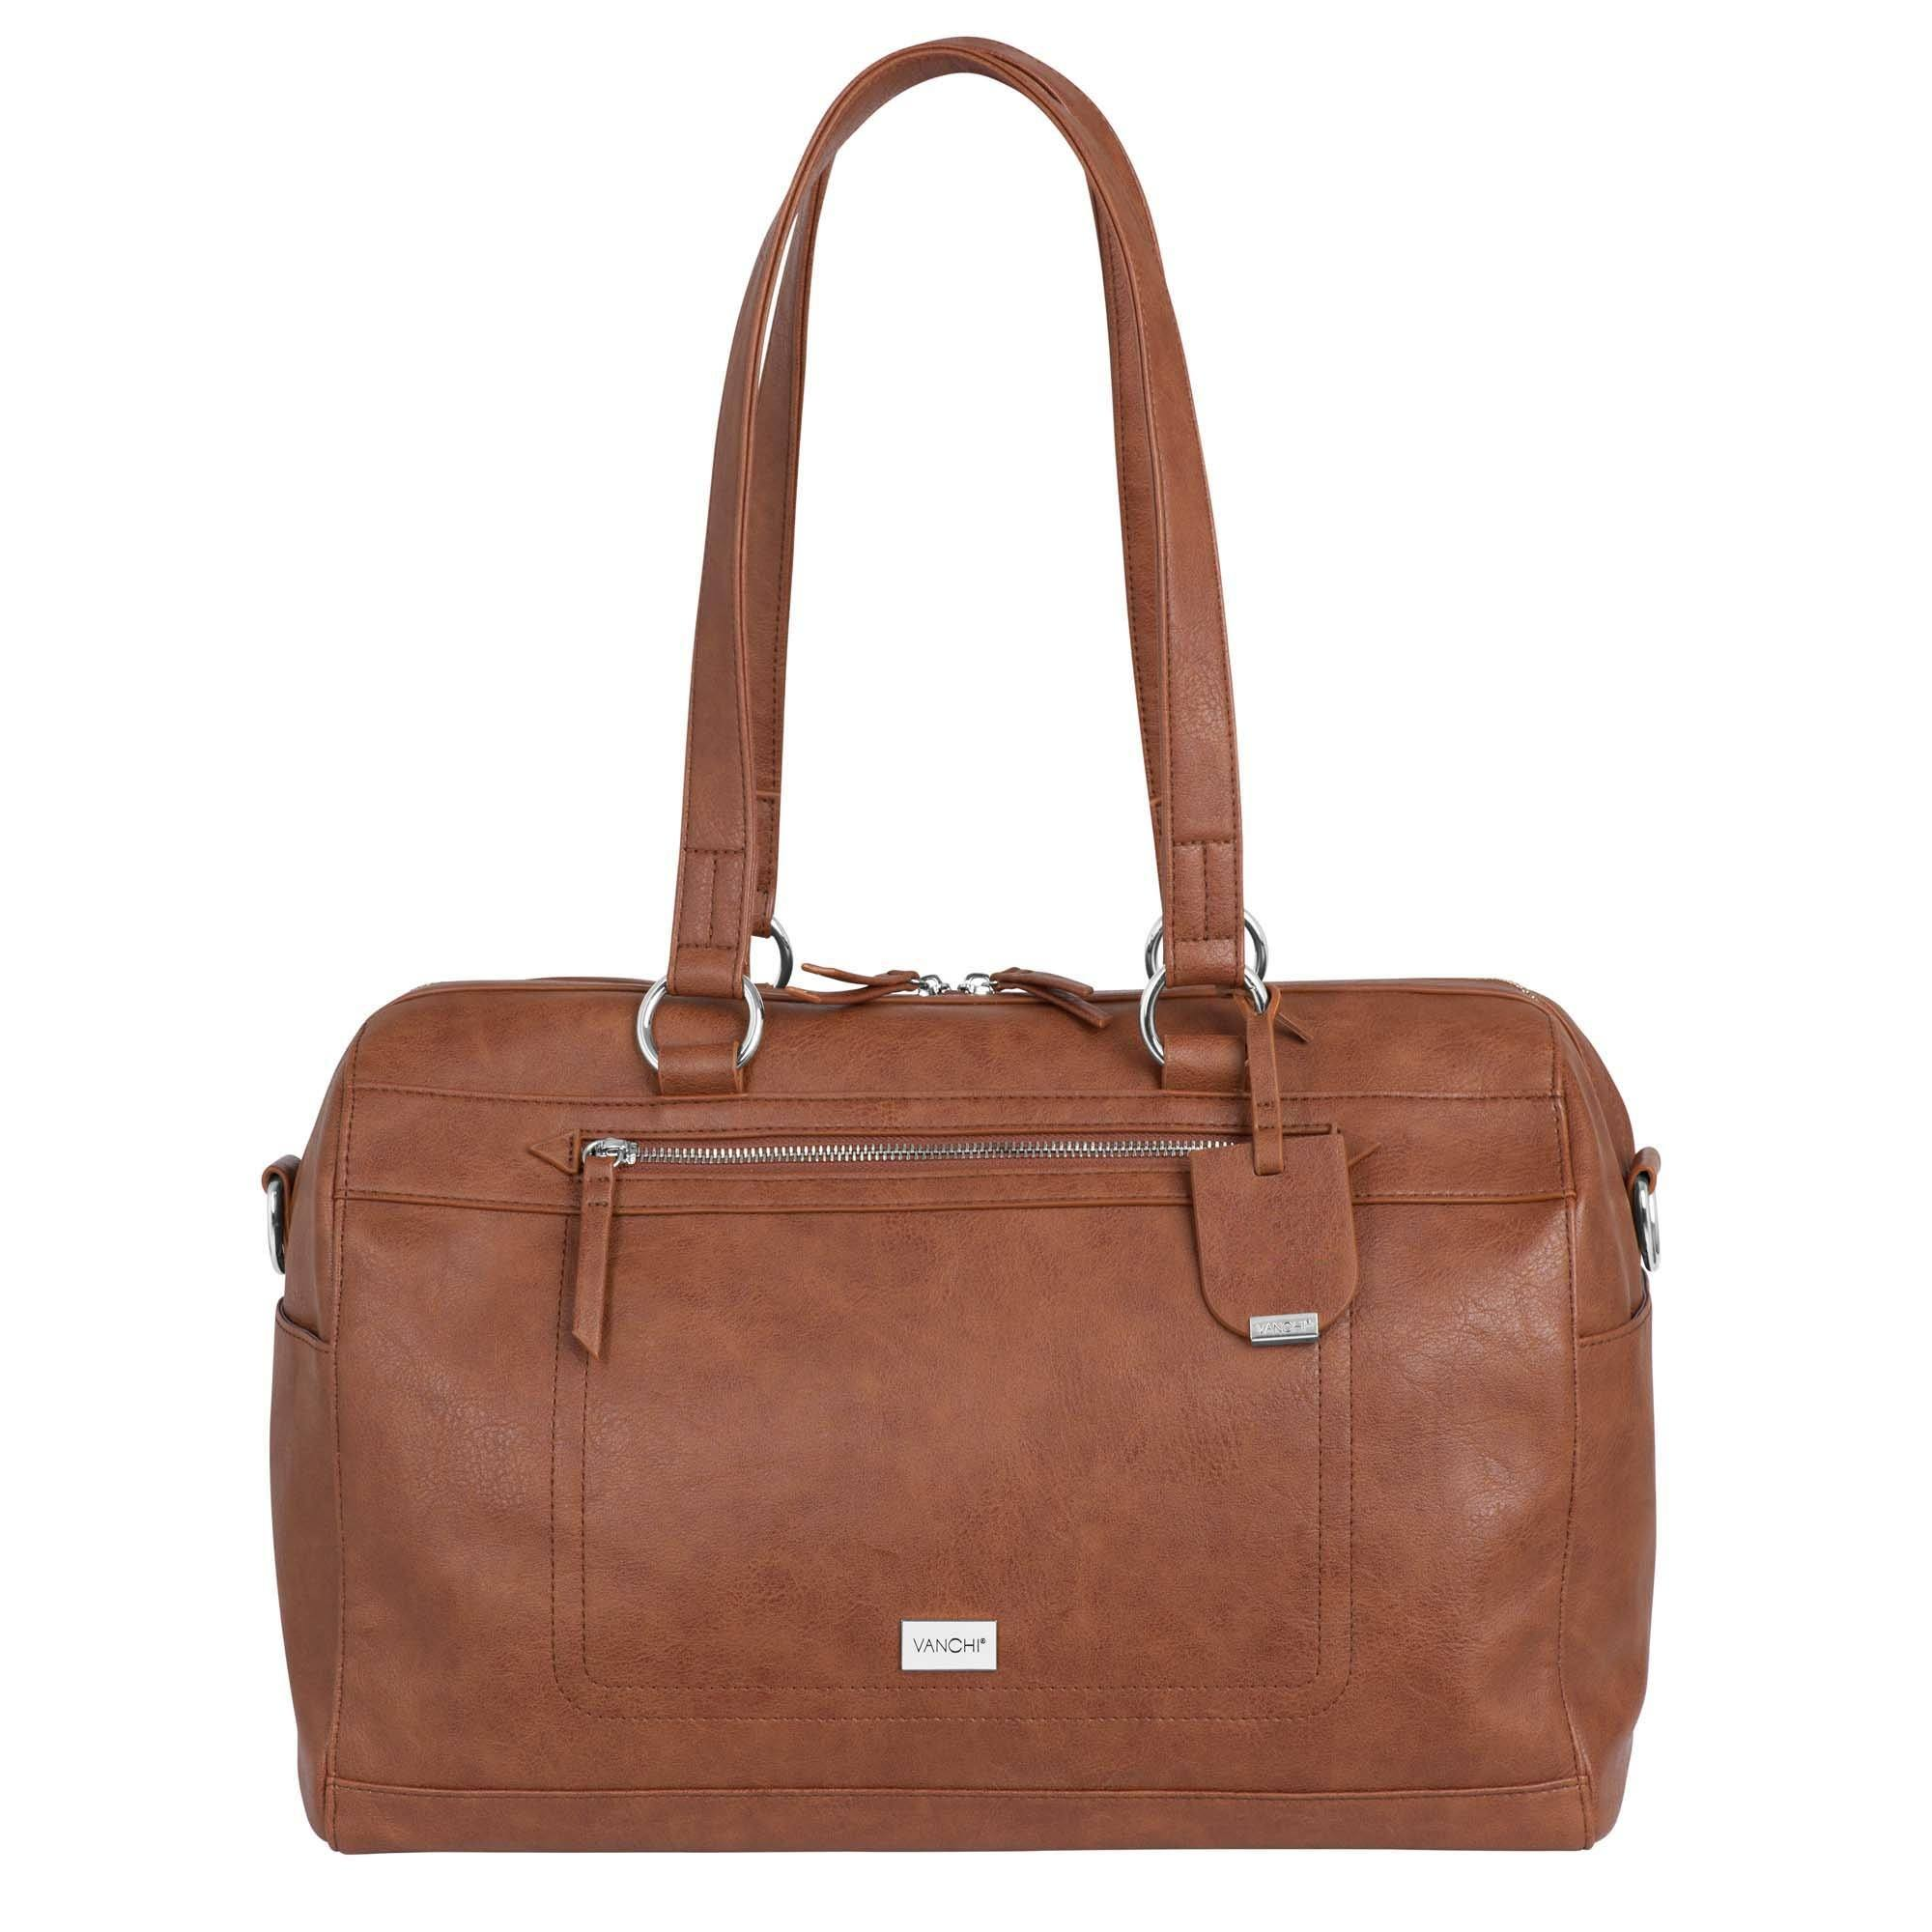 Steffi Carryall (Tan)